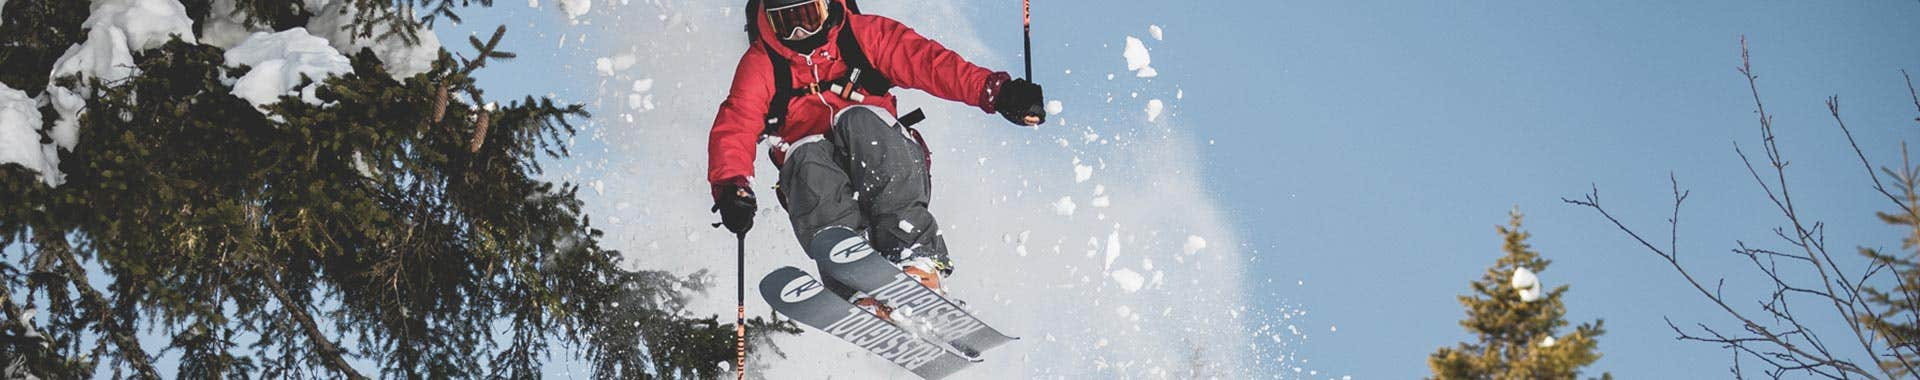 Skis freeride